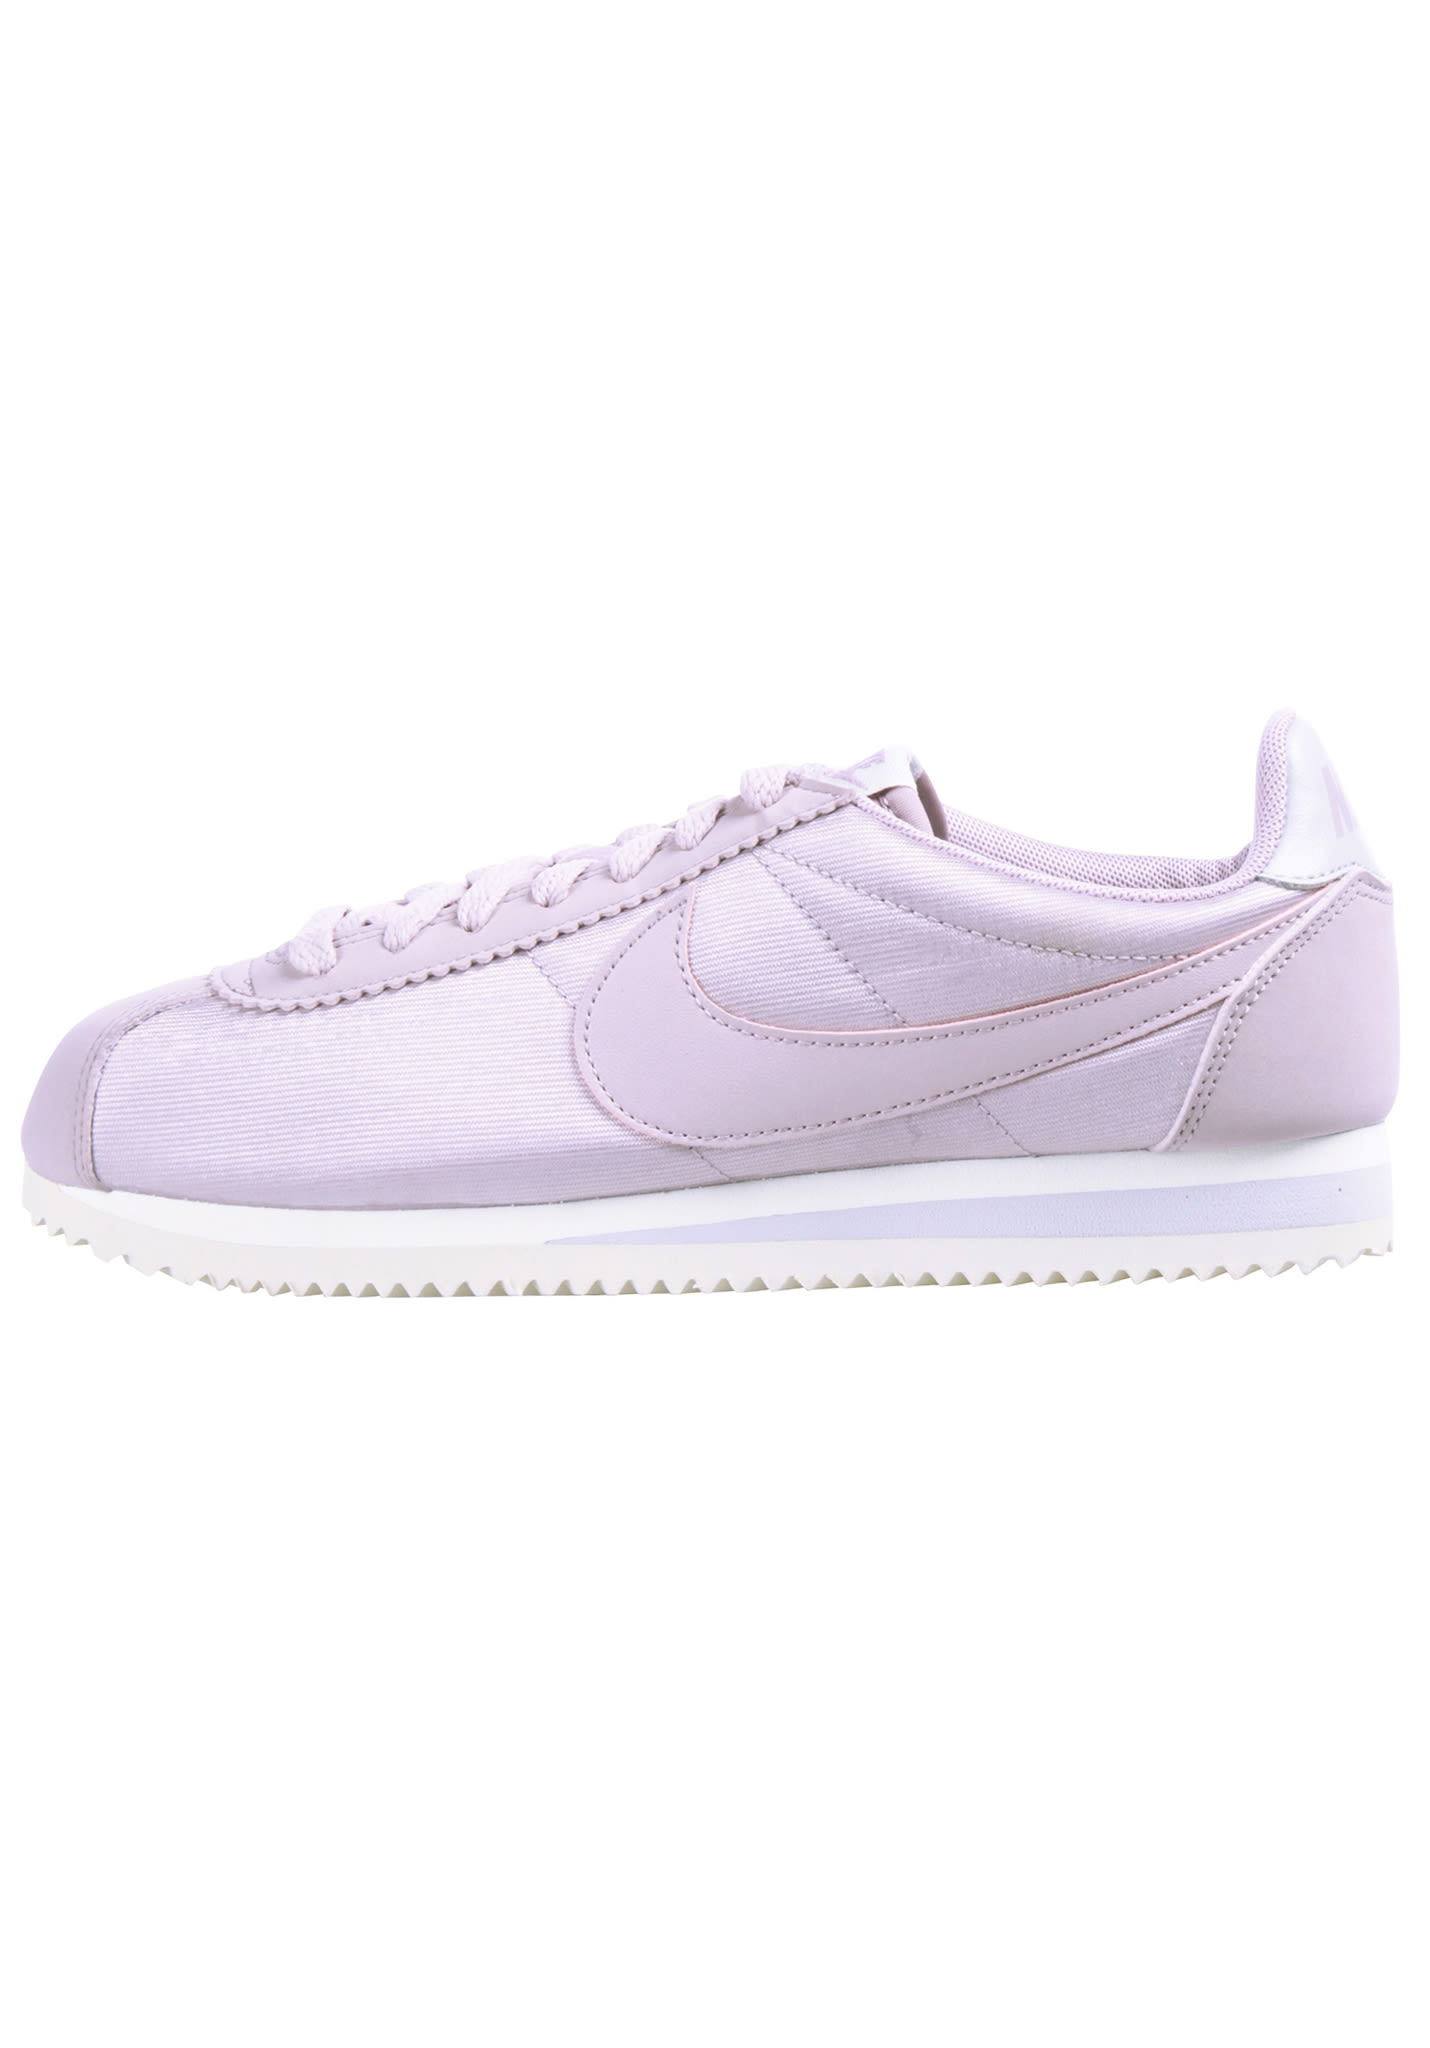 size 40 d3ade 25457 NIKE SPORTSWEAR Classic Cortez Nylon - Sneakers for Women - Purple